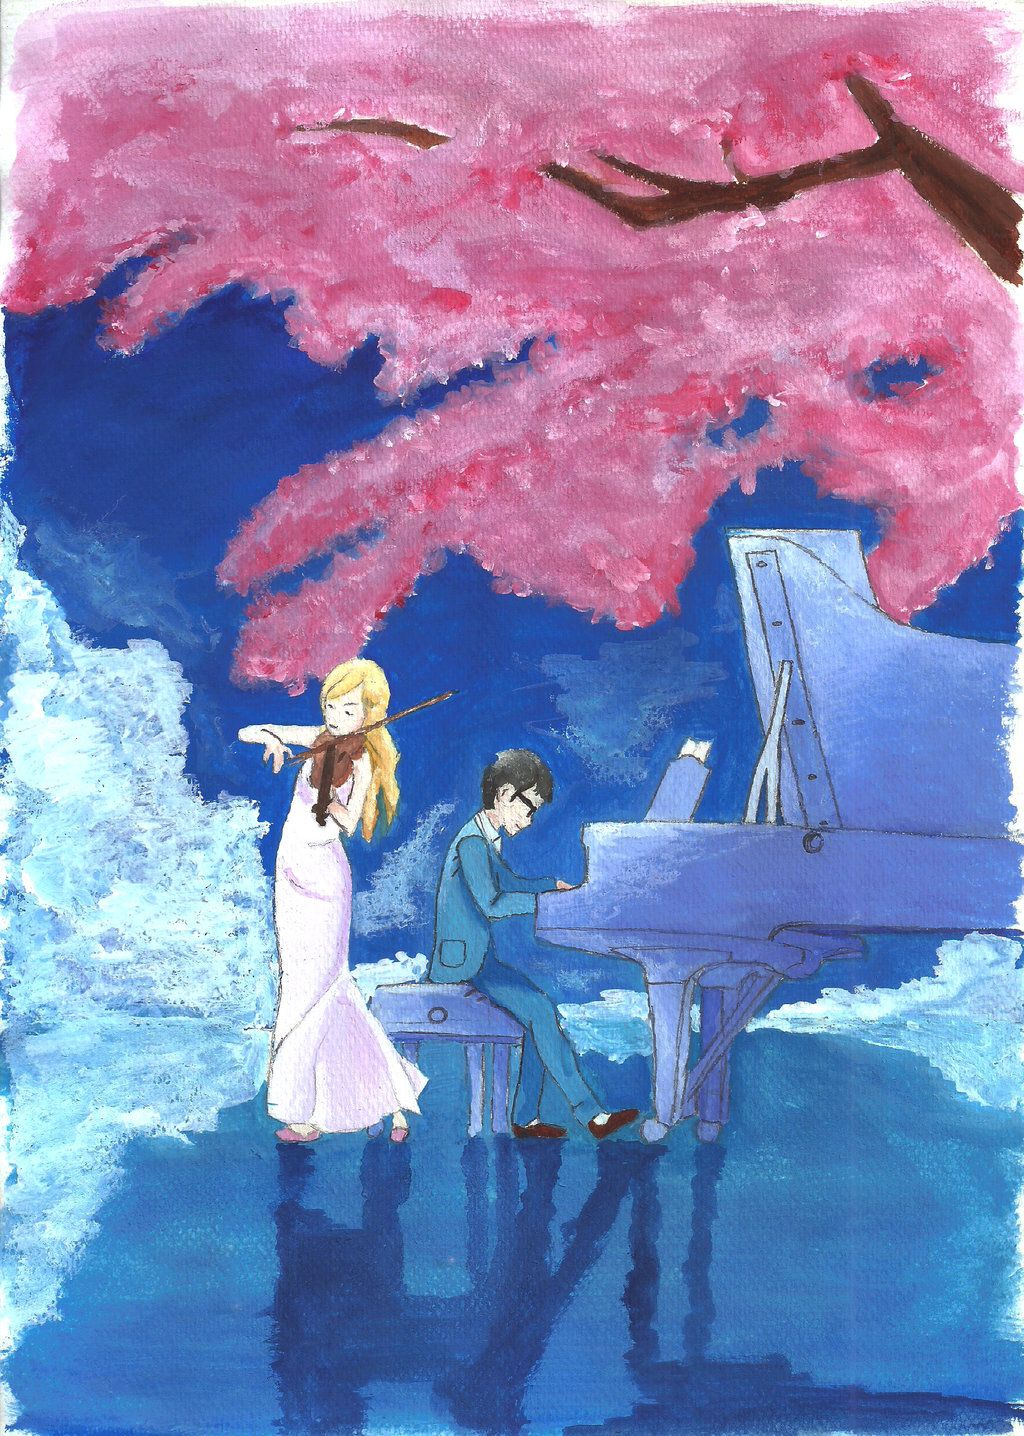 Related image Your lie in april, April art, Anime